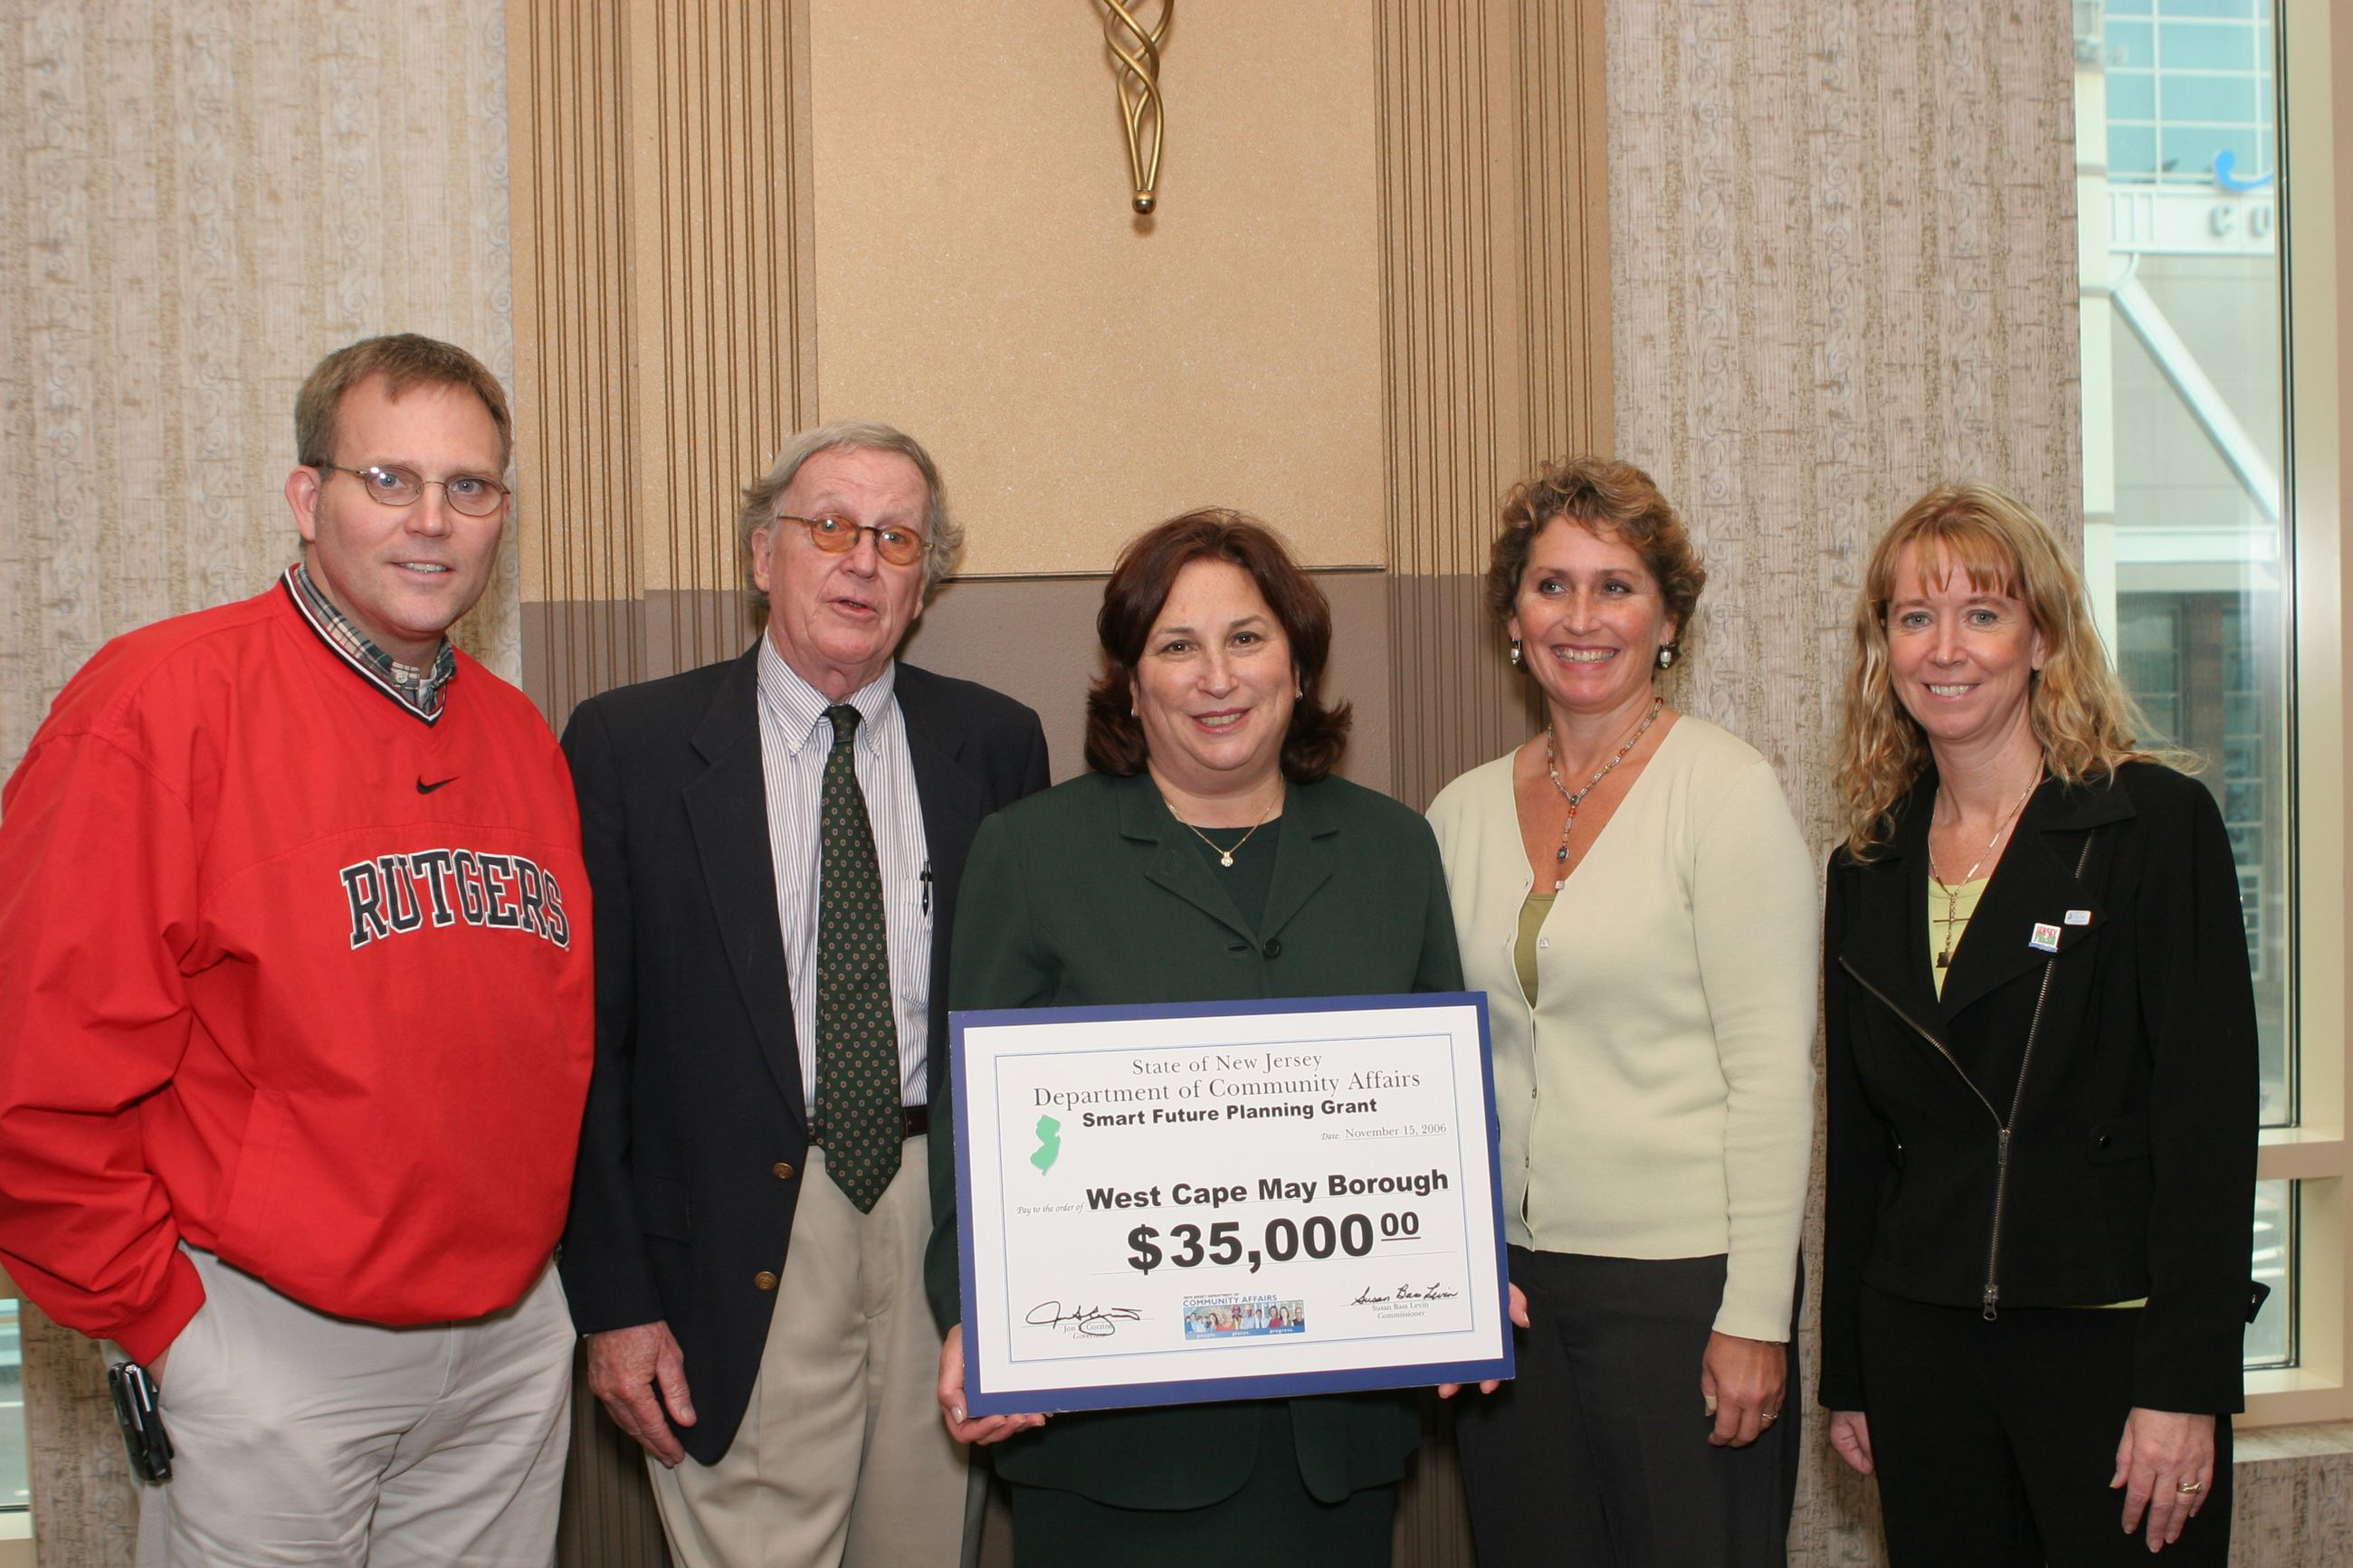 NJ DCA Commissioner Susan Bass Levin presents a Smart Future Planning Grant to West Cape May Borough